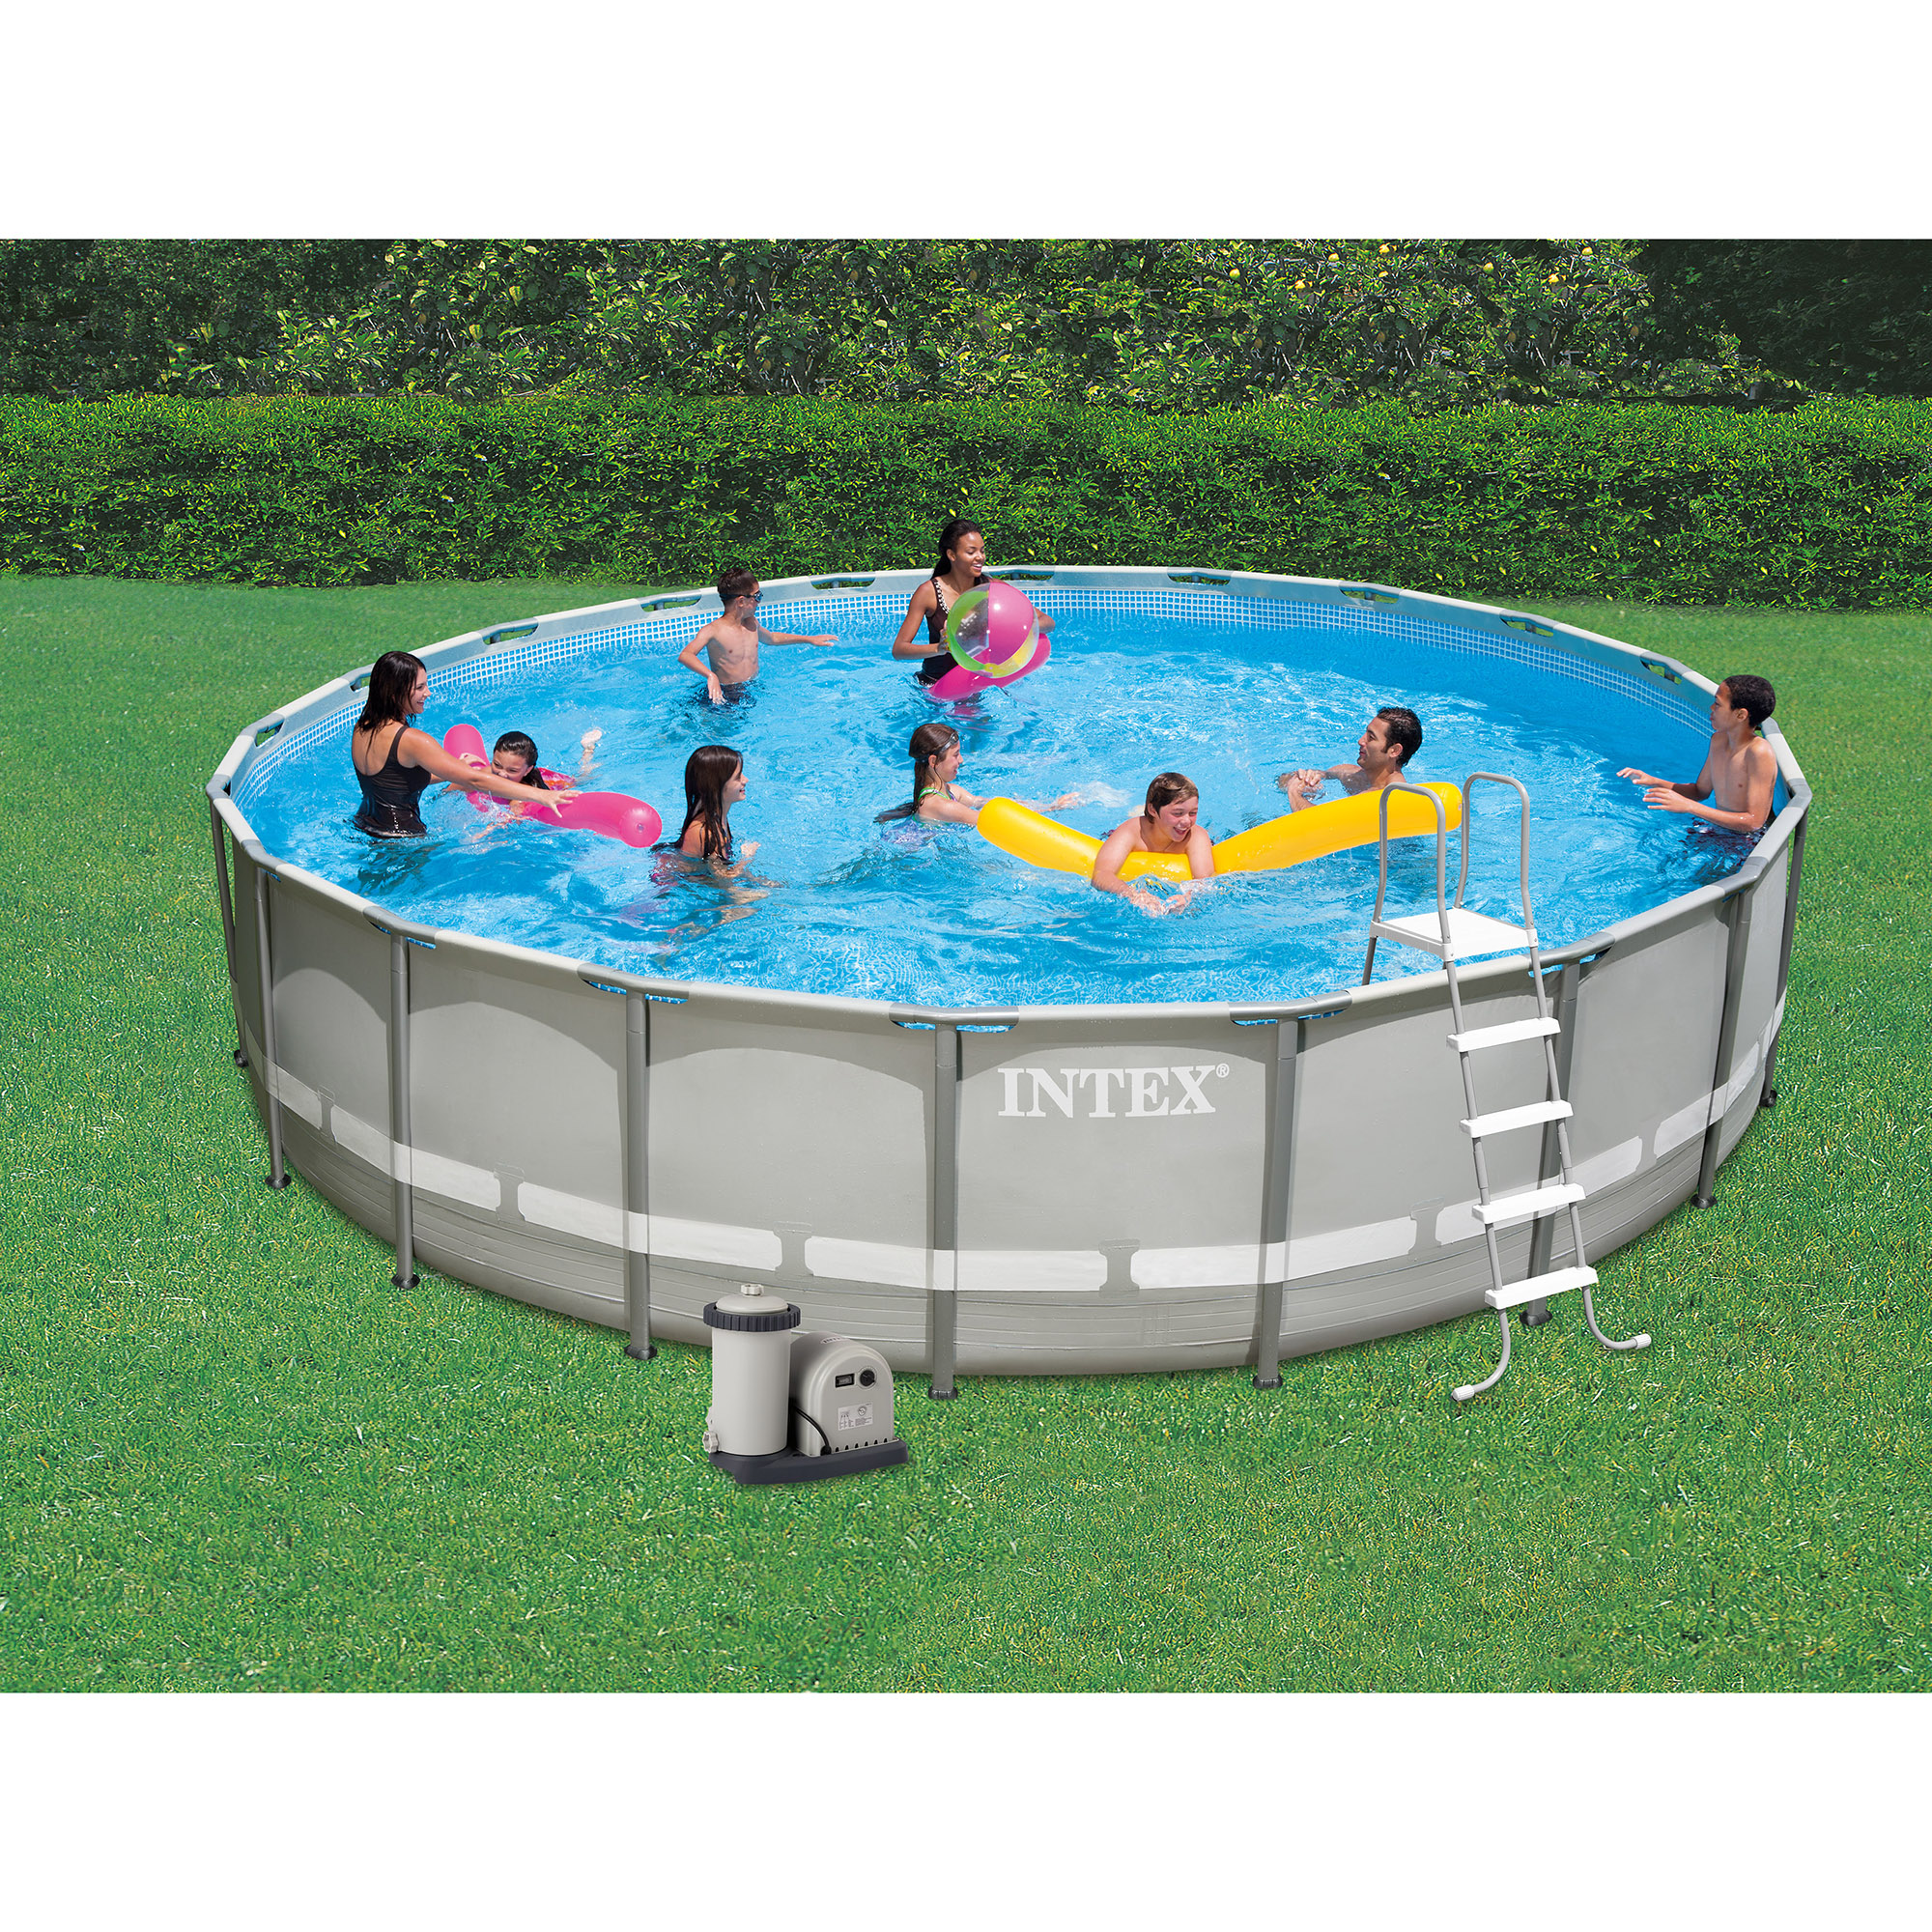 Intex 20 39 x 48 ultra frame above ground swimming pool set for Above ground pool set